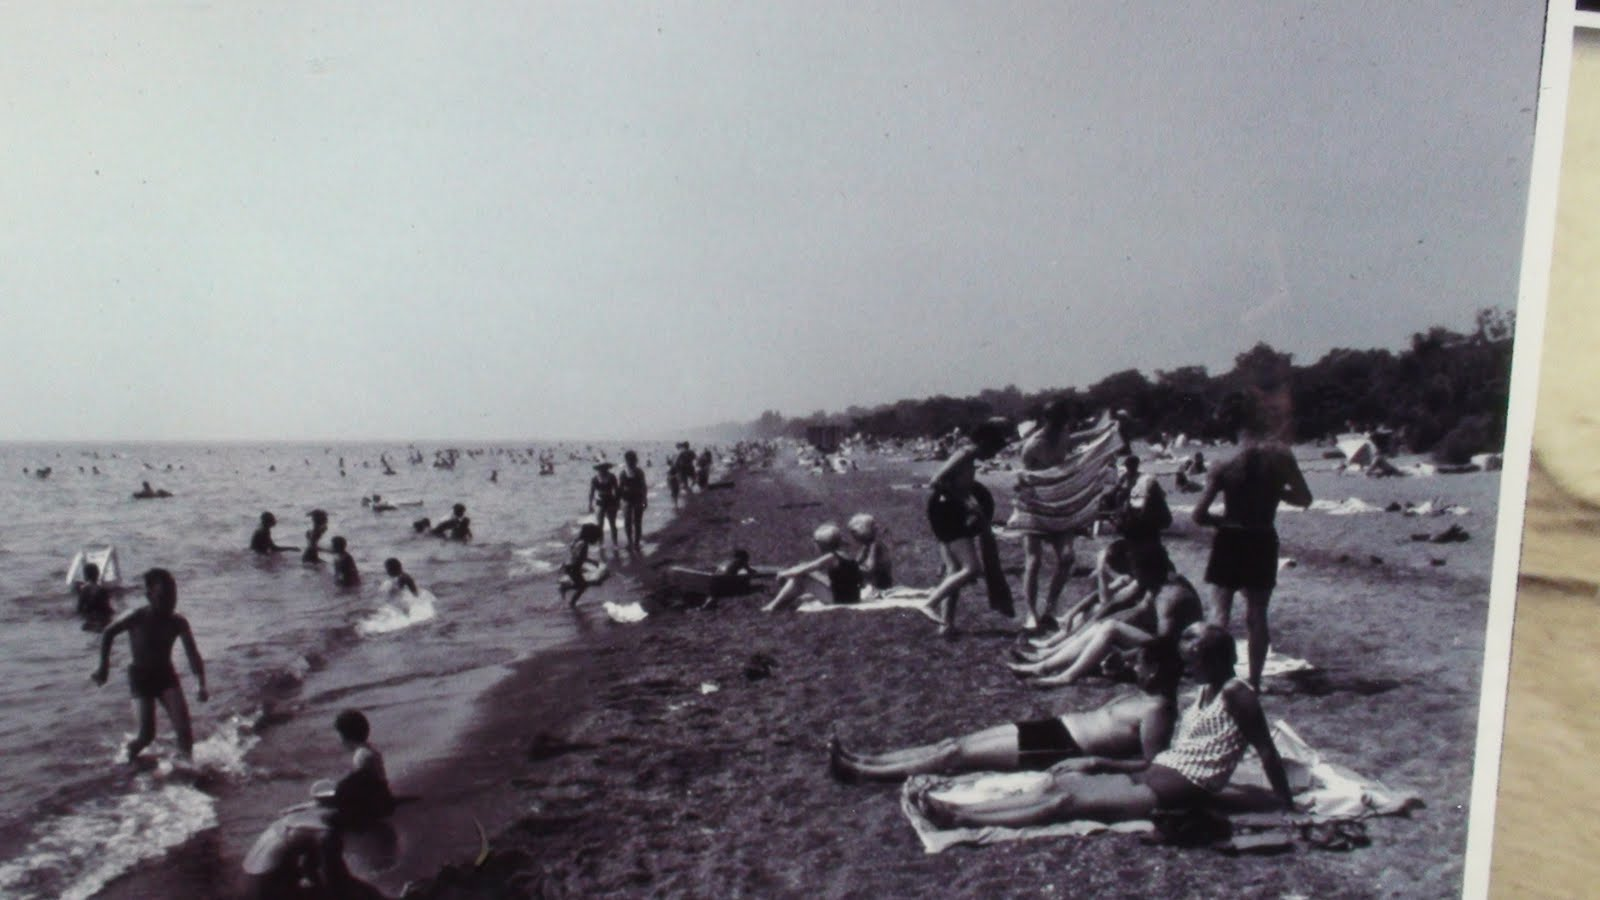 Sunbaders on the beach prior to it becoming a park.